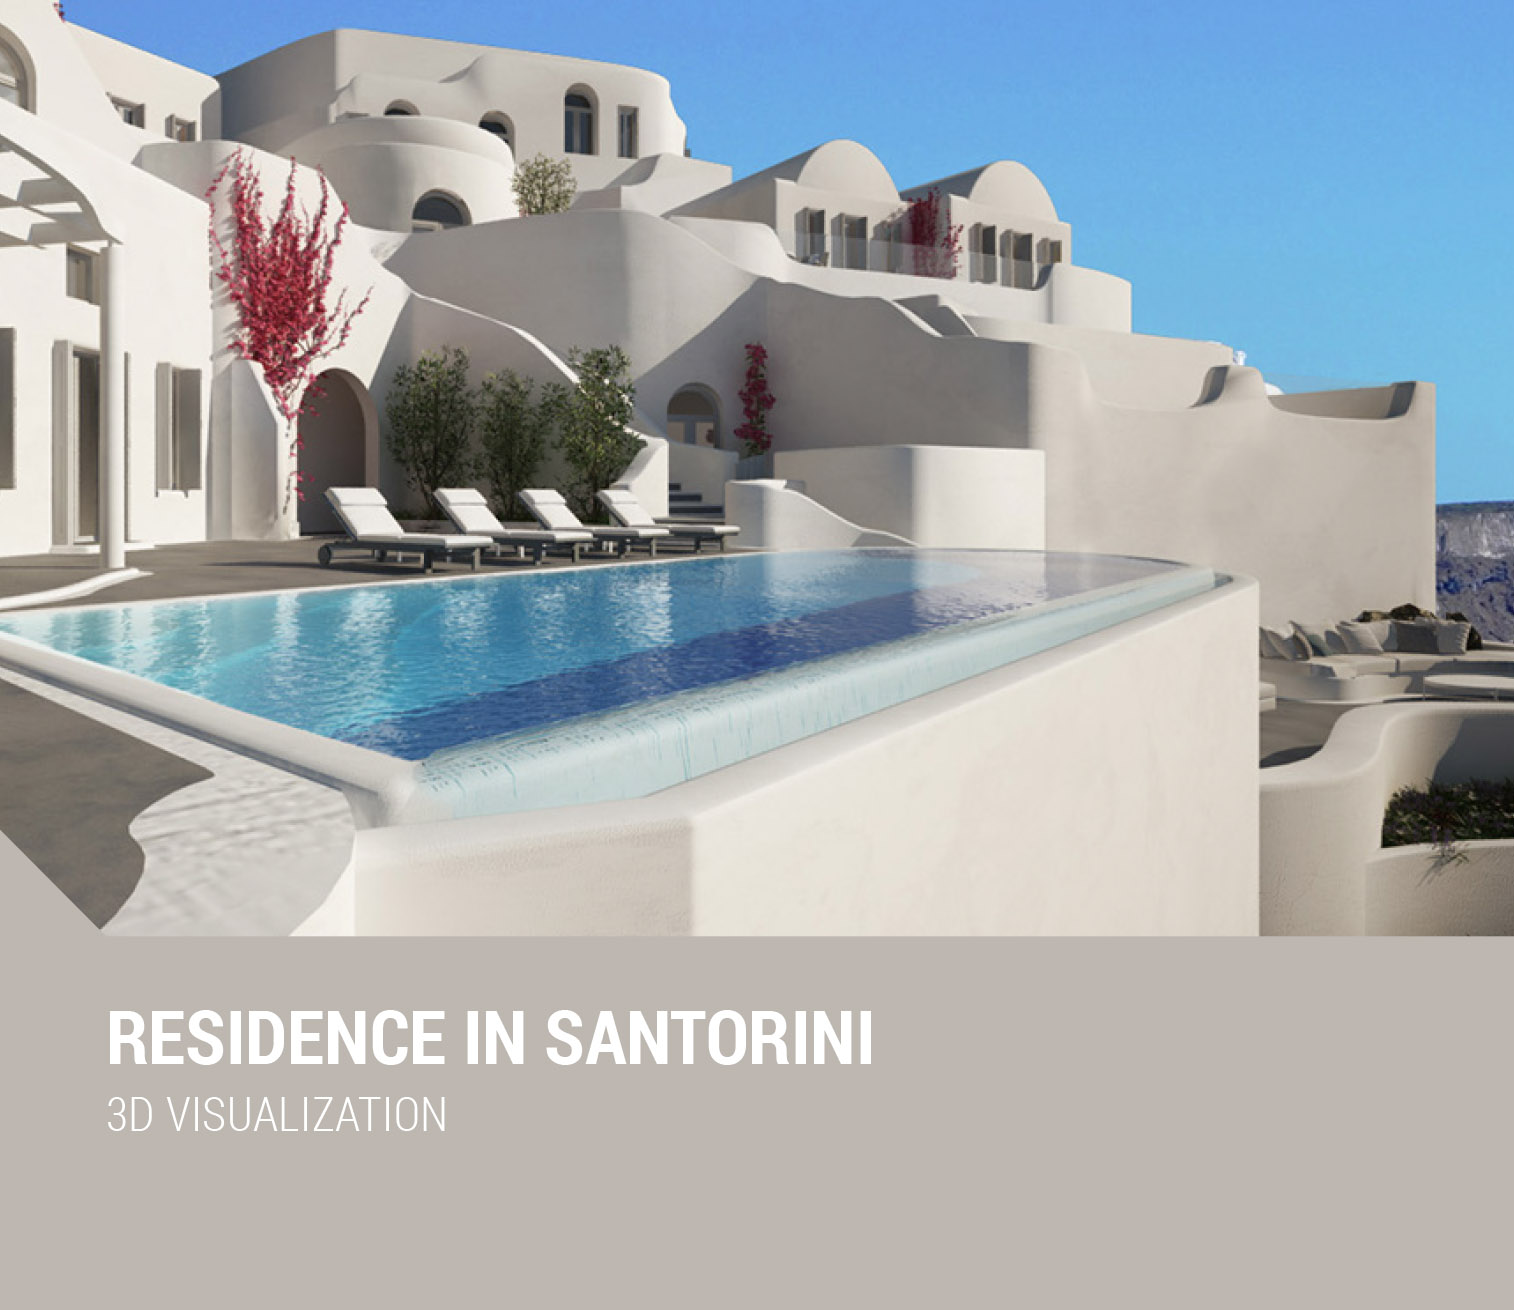 Schema Dimitra Chrona designer, creative director, architectural, 3D visualization, 3D Rendering, branding websites, digital, graphic design, interior design, real estate, luxury property, staging, museum, virtual, art, brochures, exhibitions, logotype, logo, Canada Quebec Montreal Athens Greece schema design santorini residence small.jpg